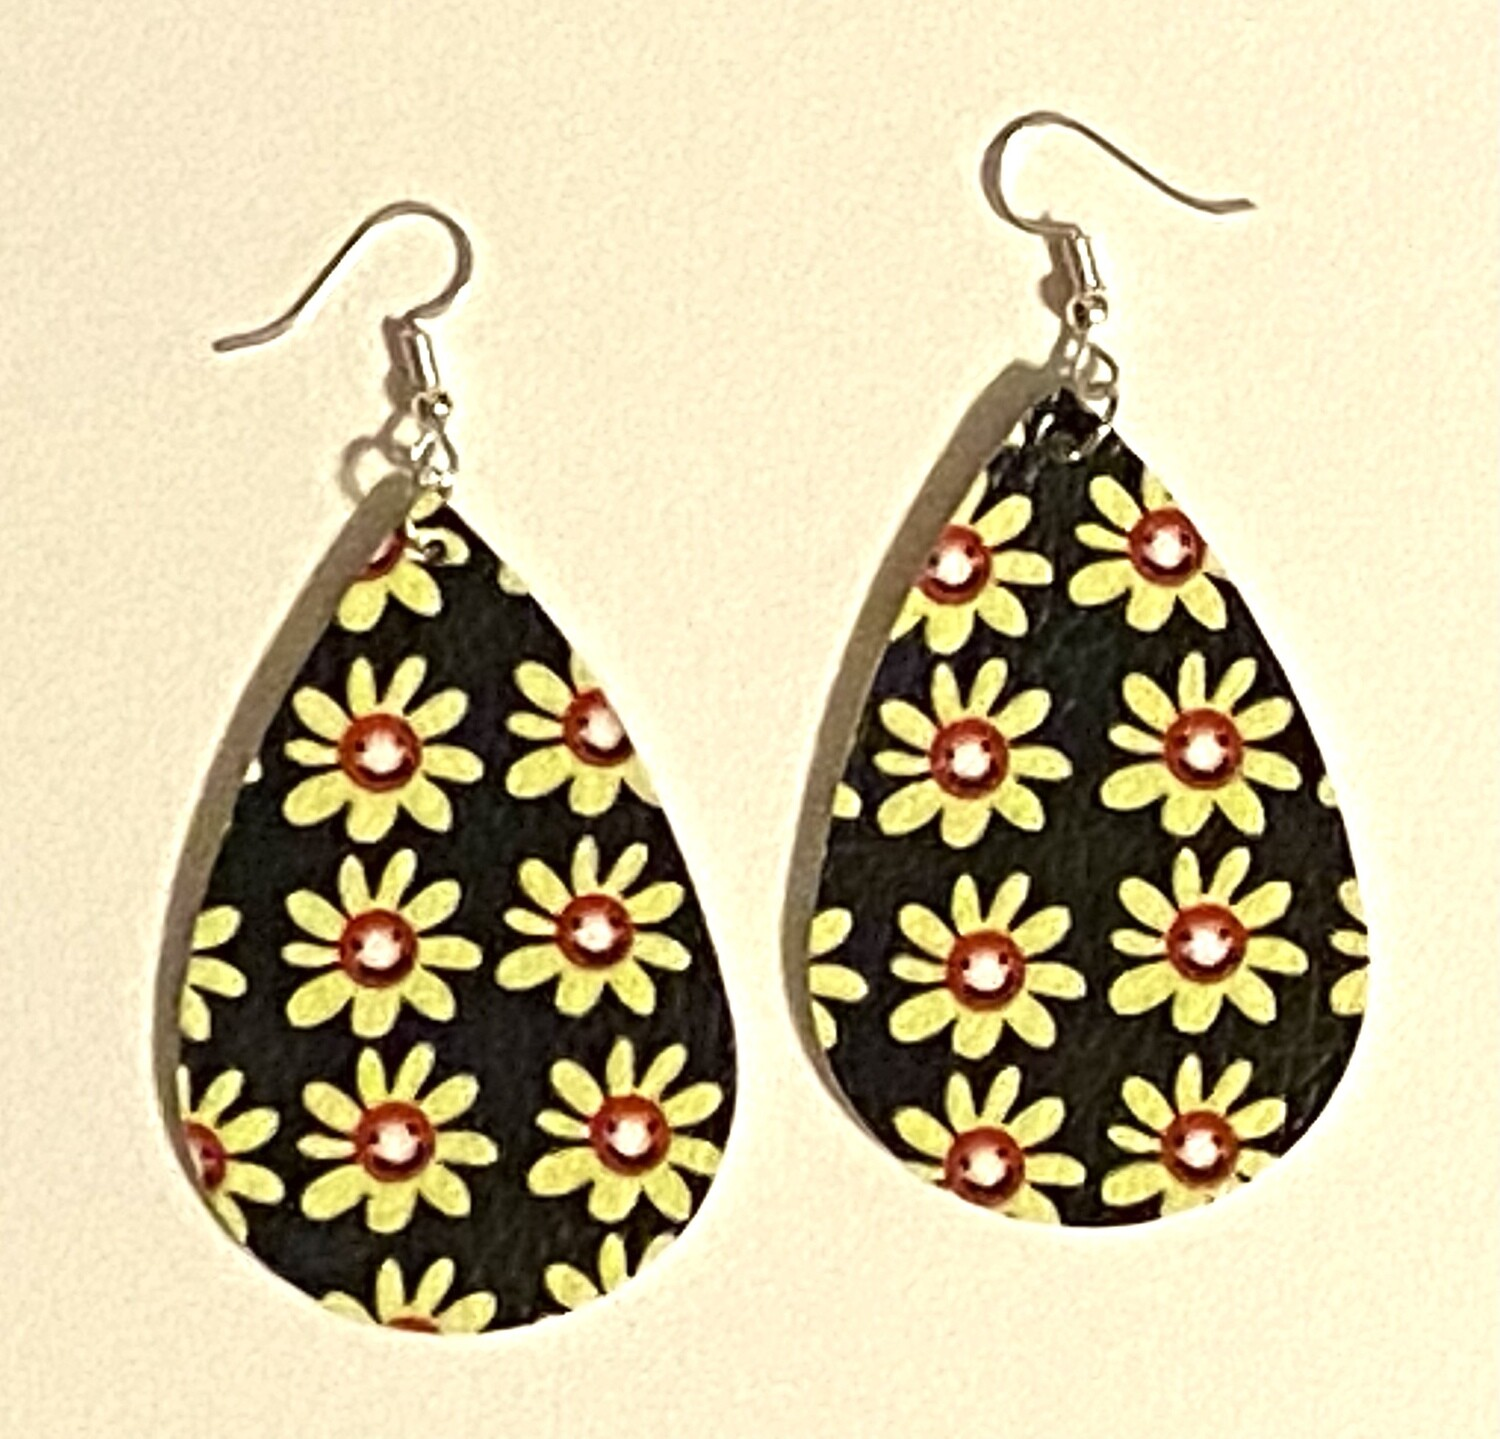 Smiley Floral Leather Earrings